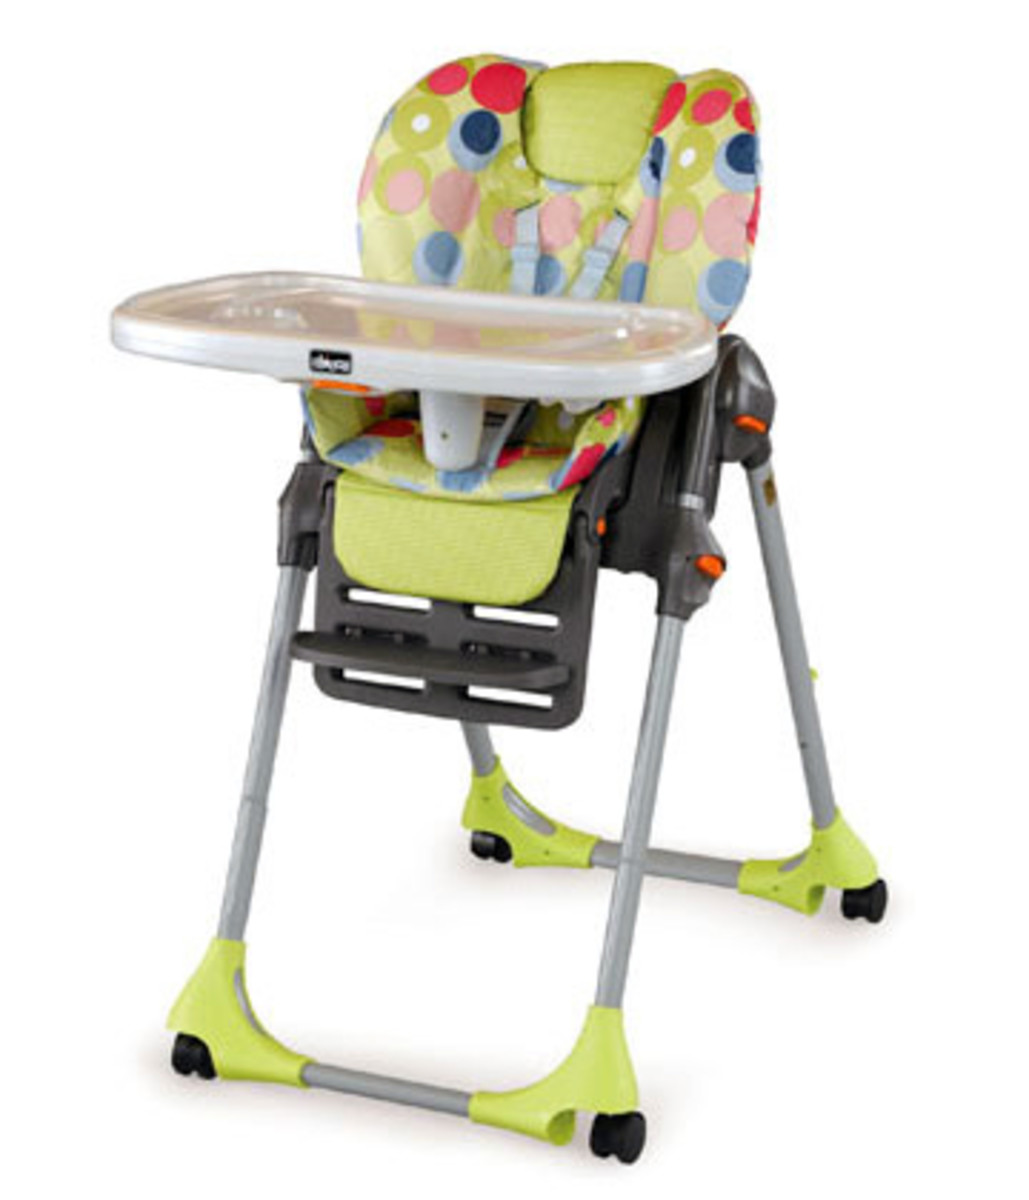 Chicco Reviews - The Chicco Polly High Chair